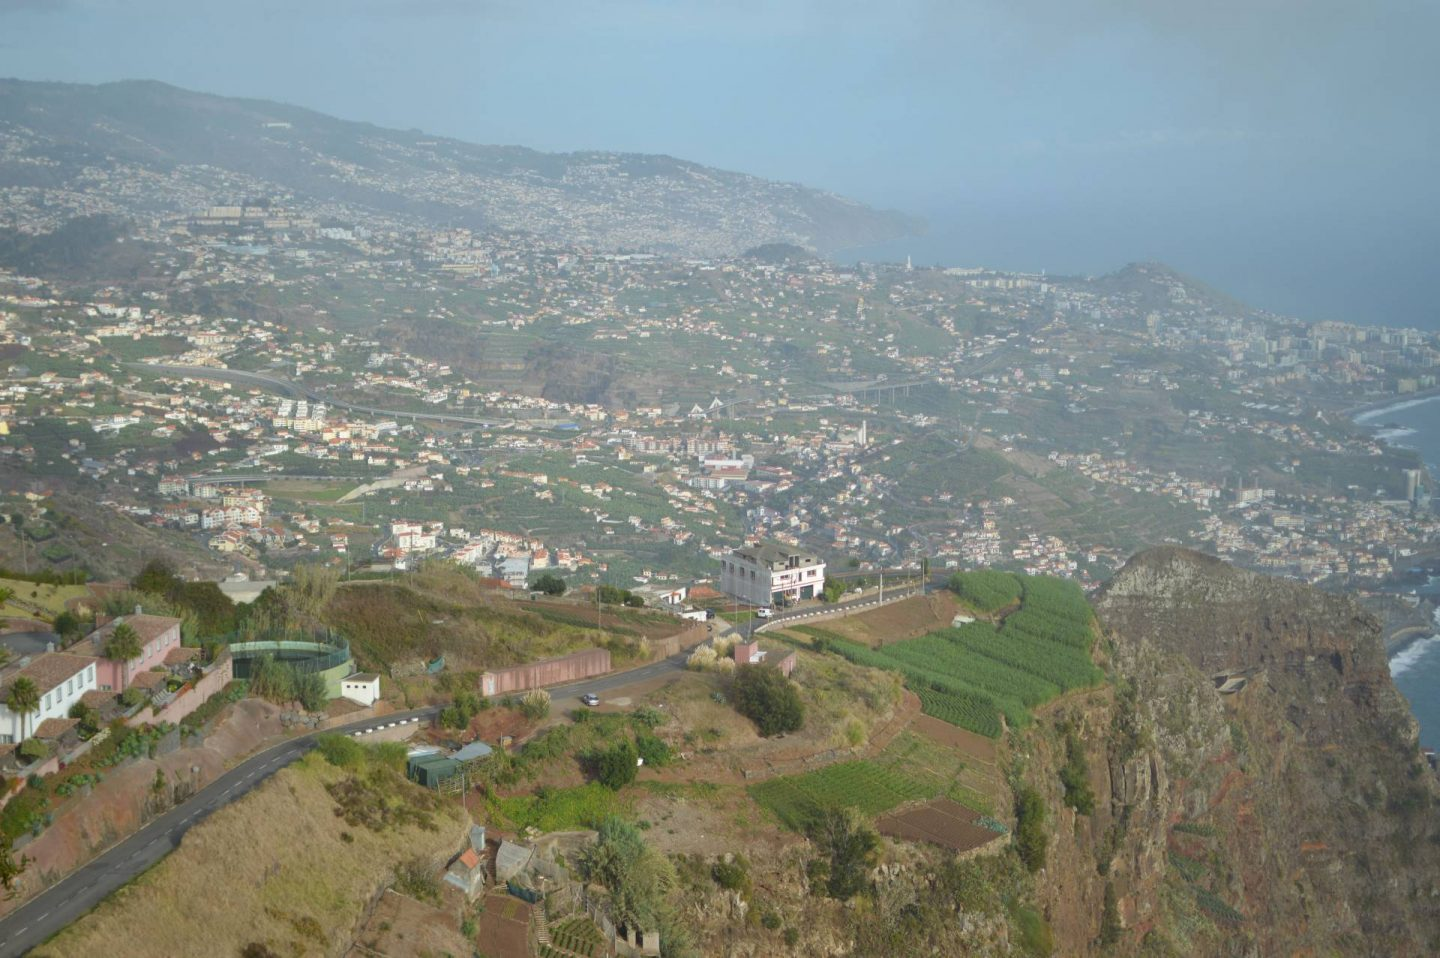 view from Cabo Girão skywalk